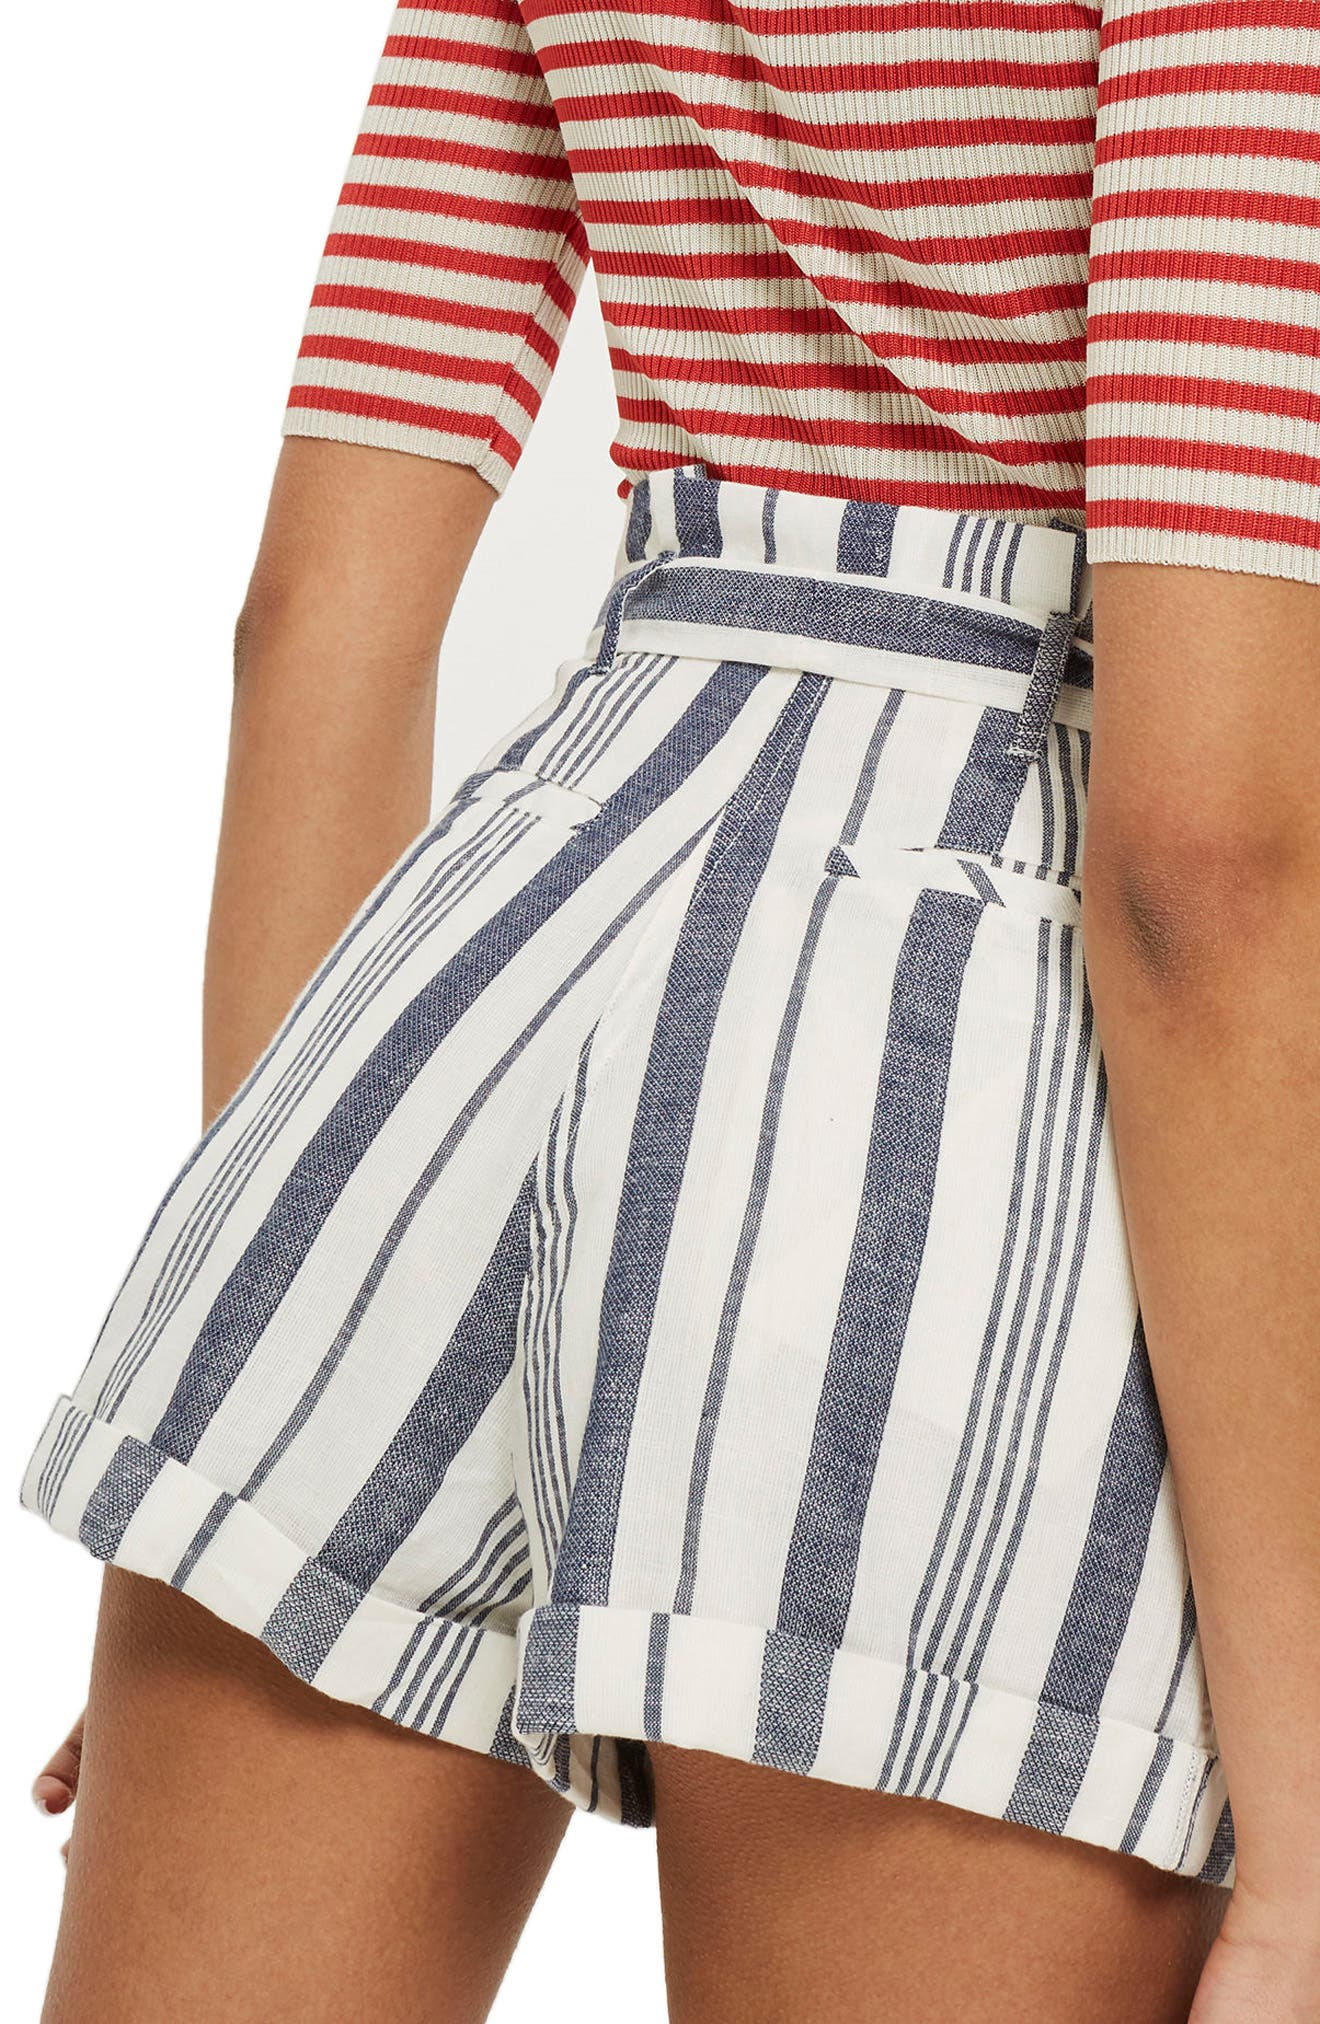 Stripe Paperbag Shorts,                             Alternate thumbnail 2, color,                             900